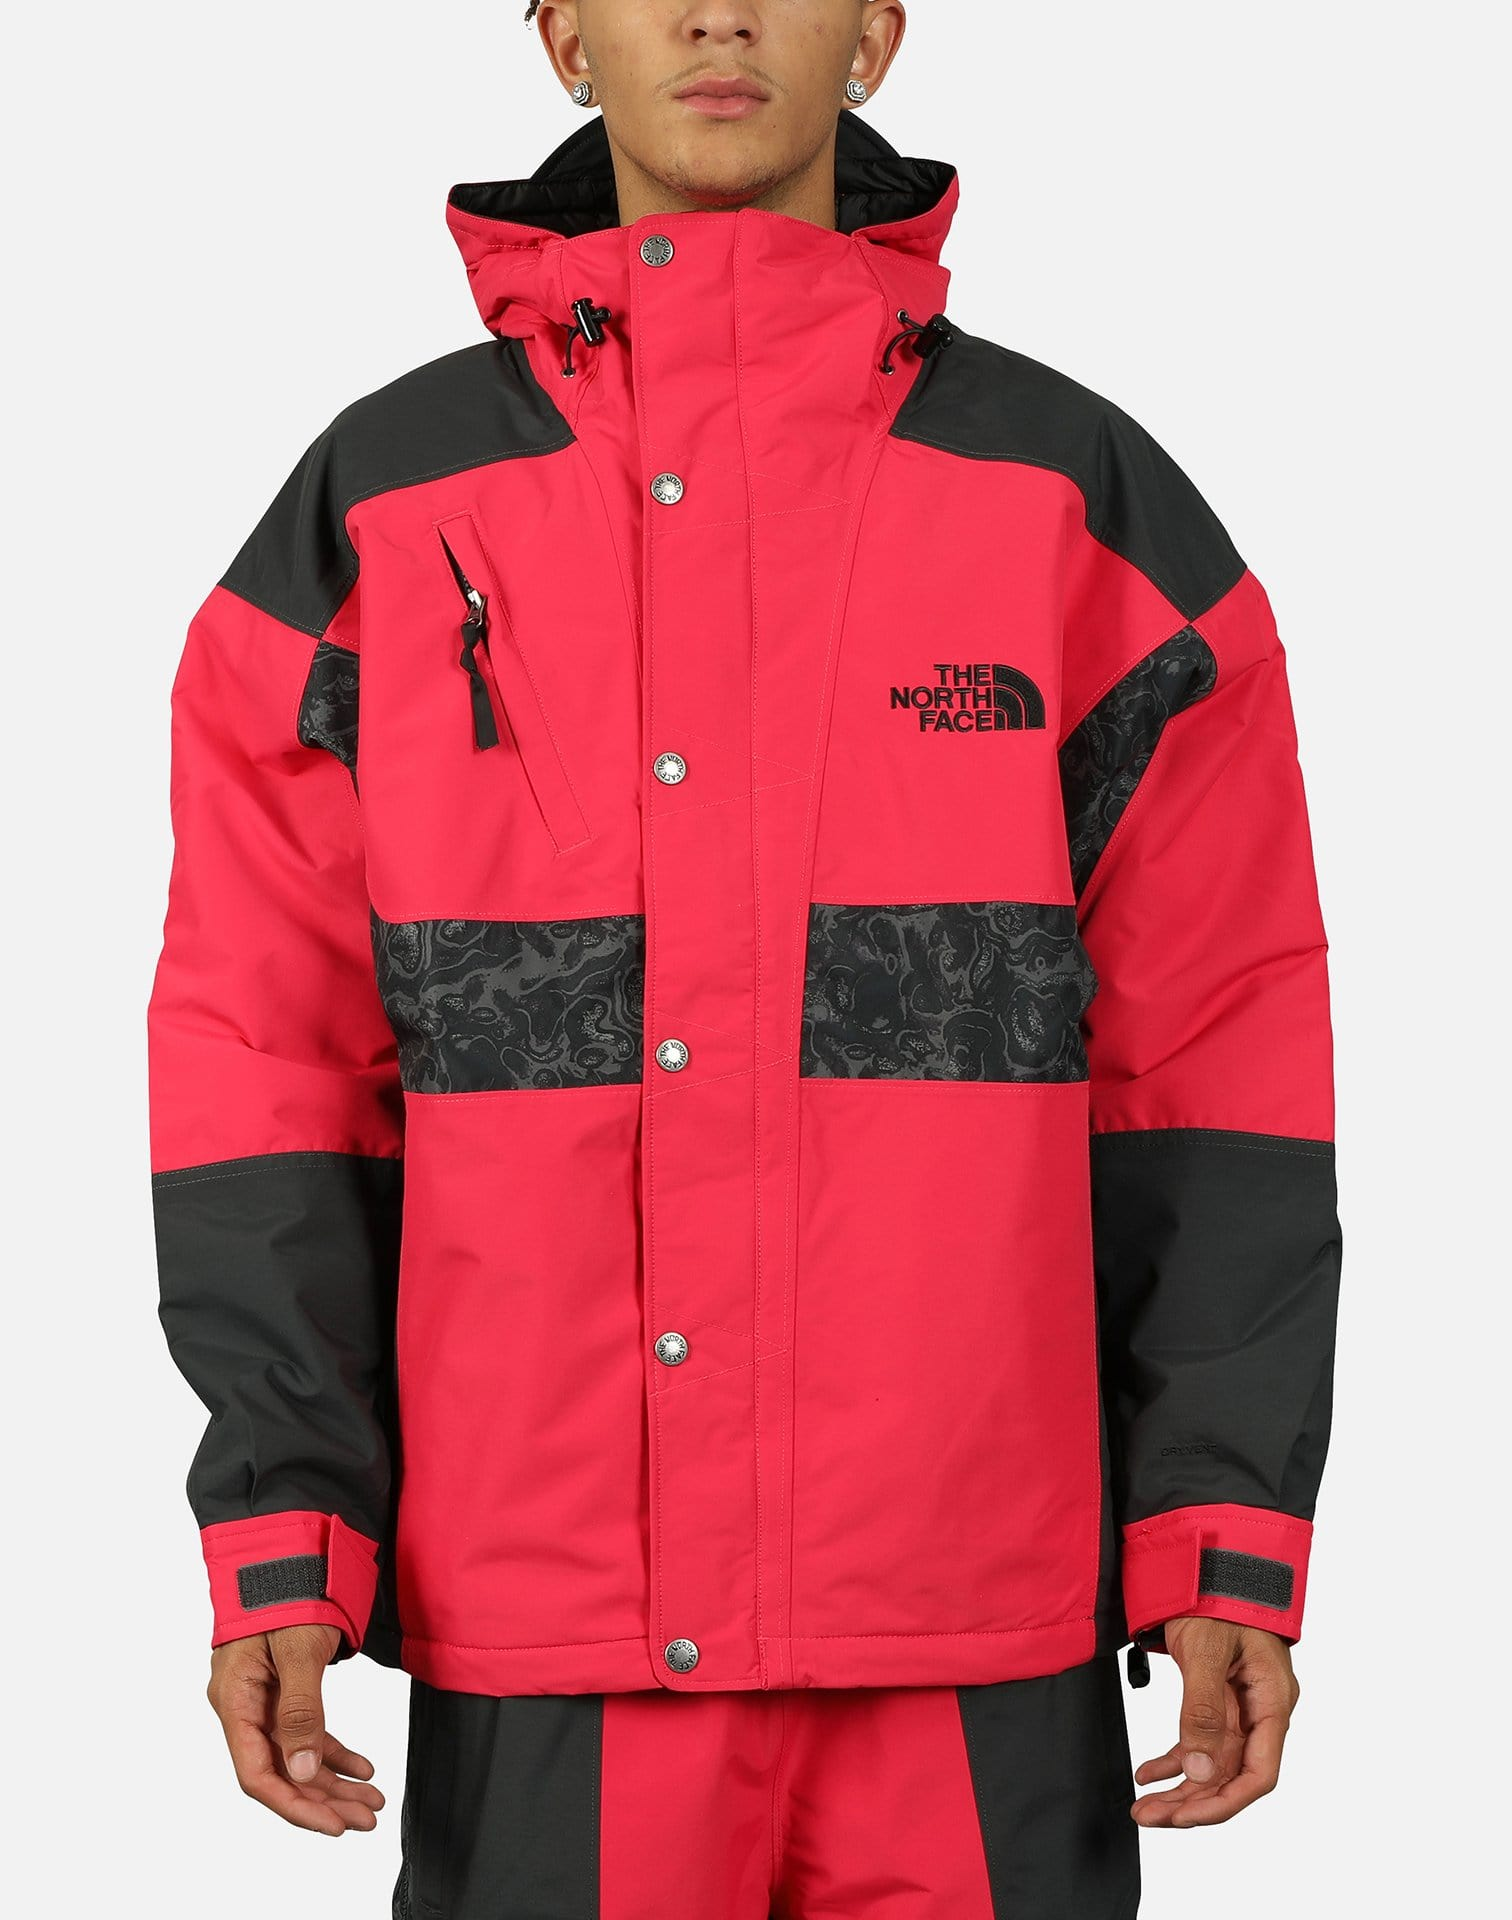 The North Face Men's '94 Rage Waterproof Synthetic Insulated Jacket